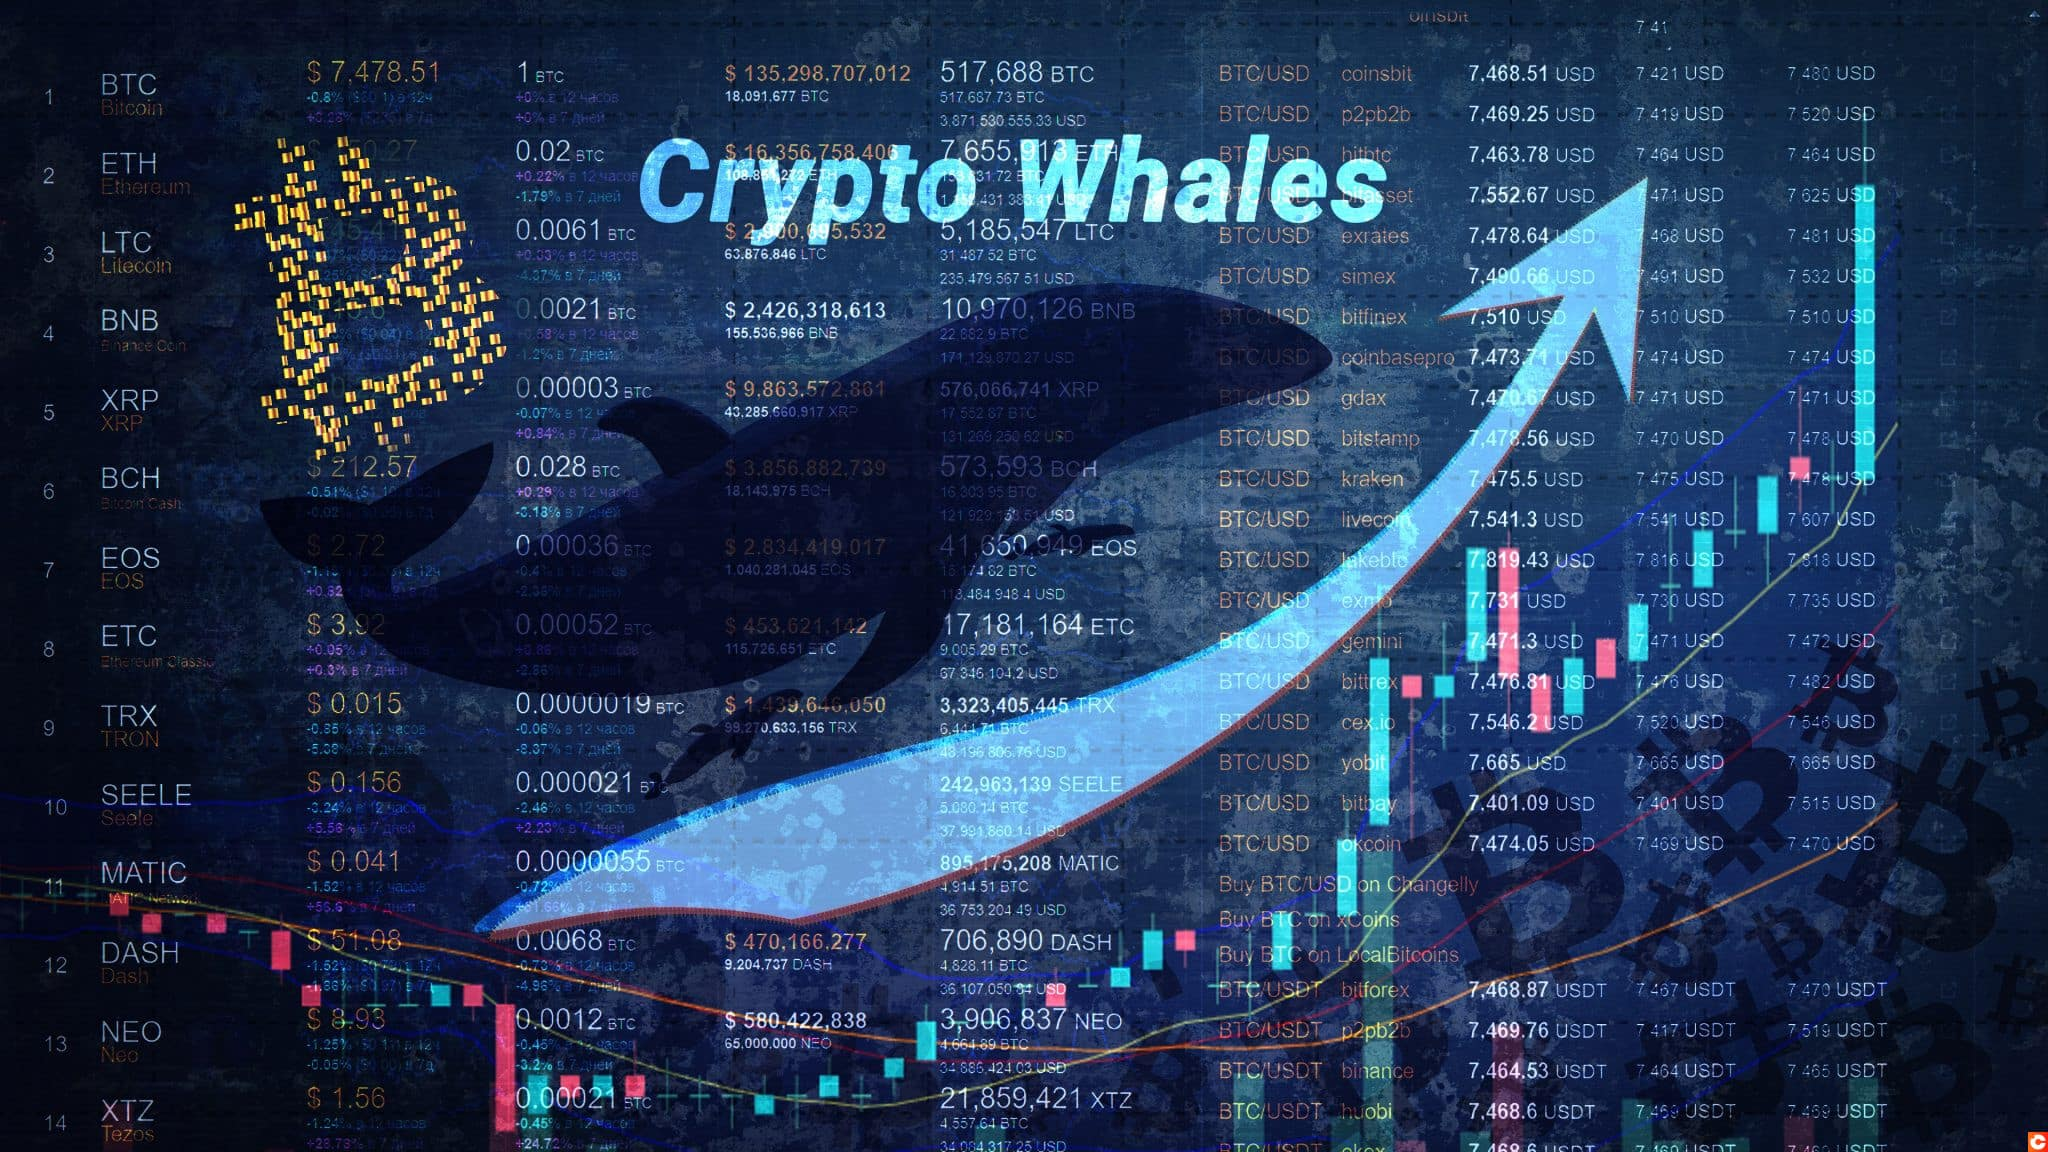 Growth in the number of crypto whales with an upward arrow and a chart rushing upward. Increase in large clusters of BTC. Coin names and numbers on a dark background. Bitcoin logo. Horizontal.